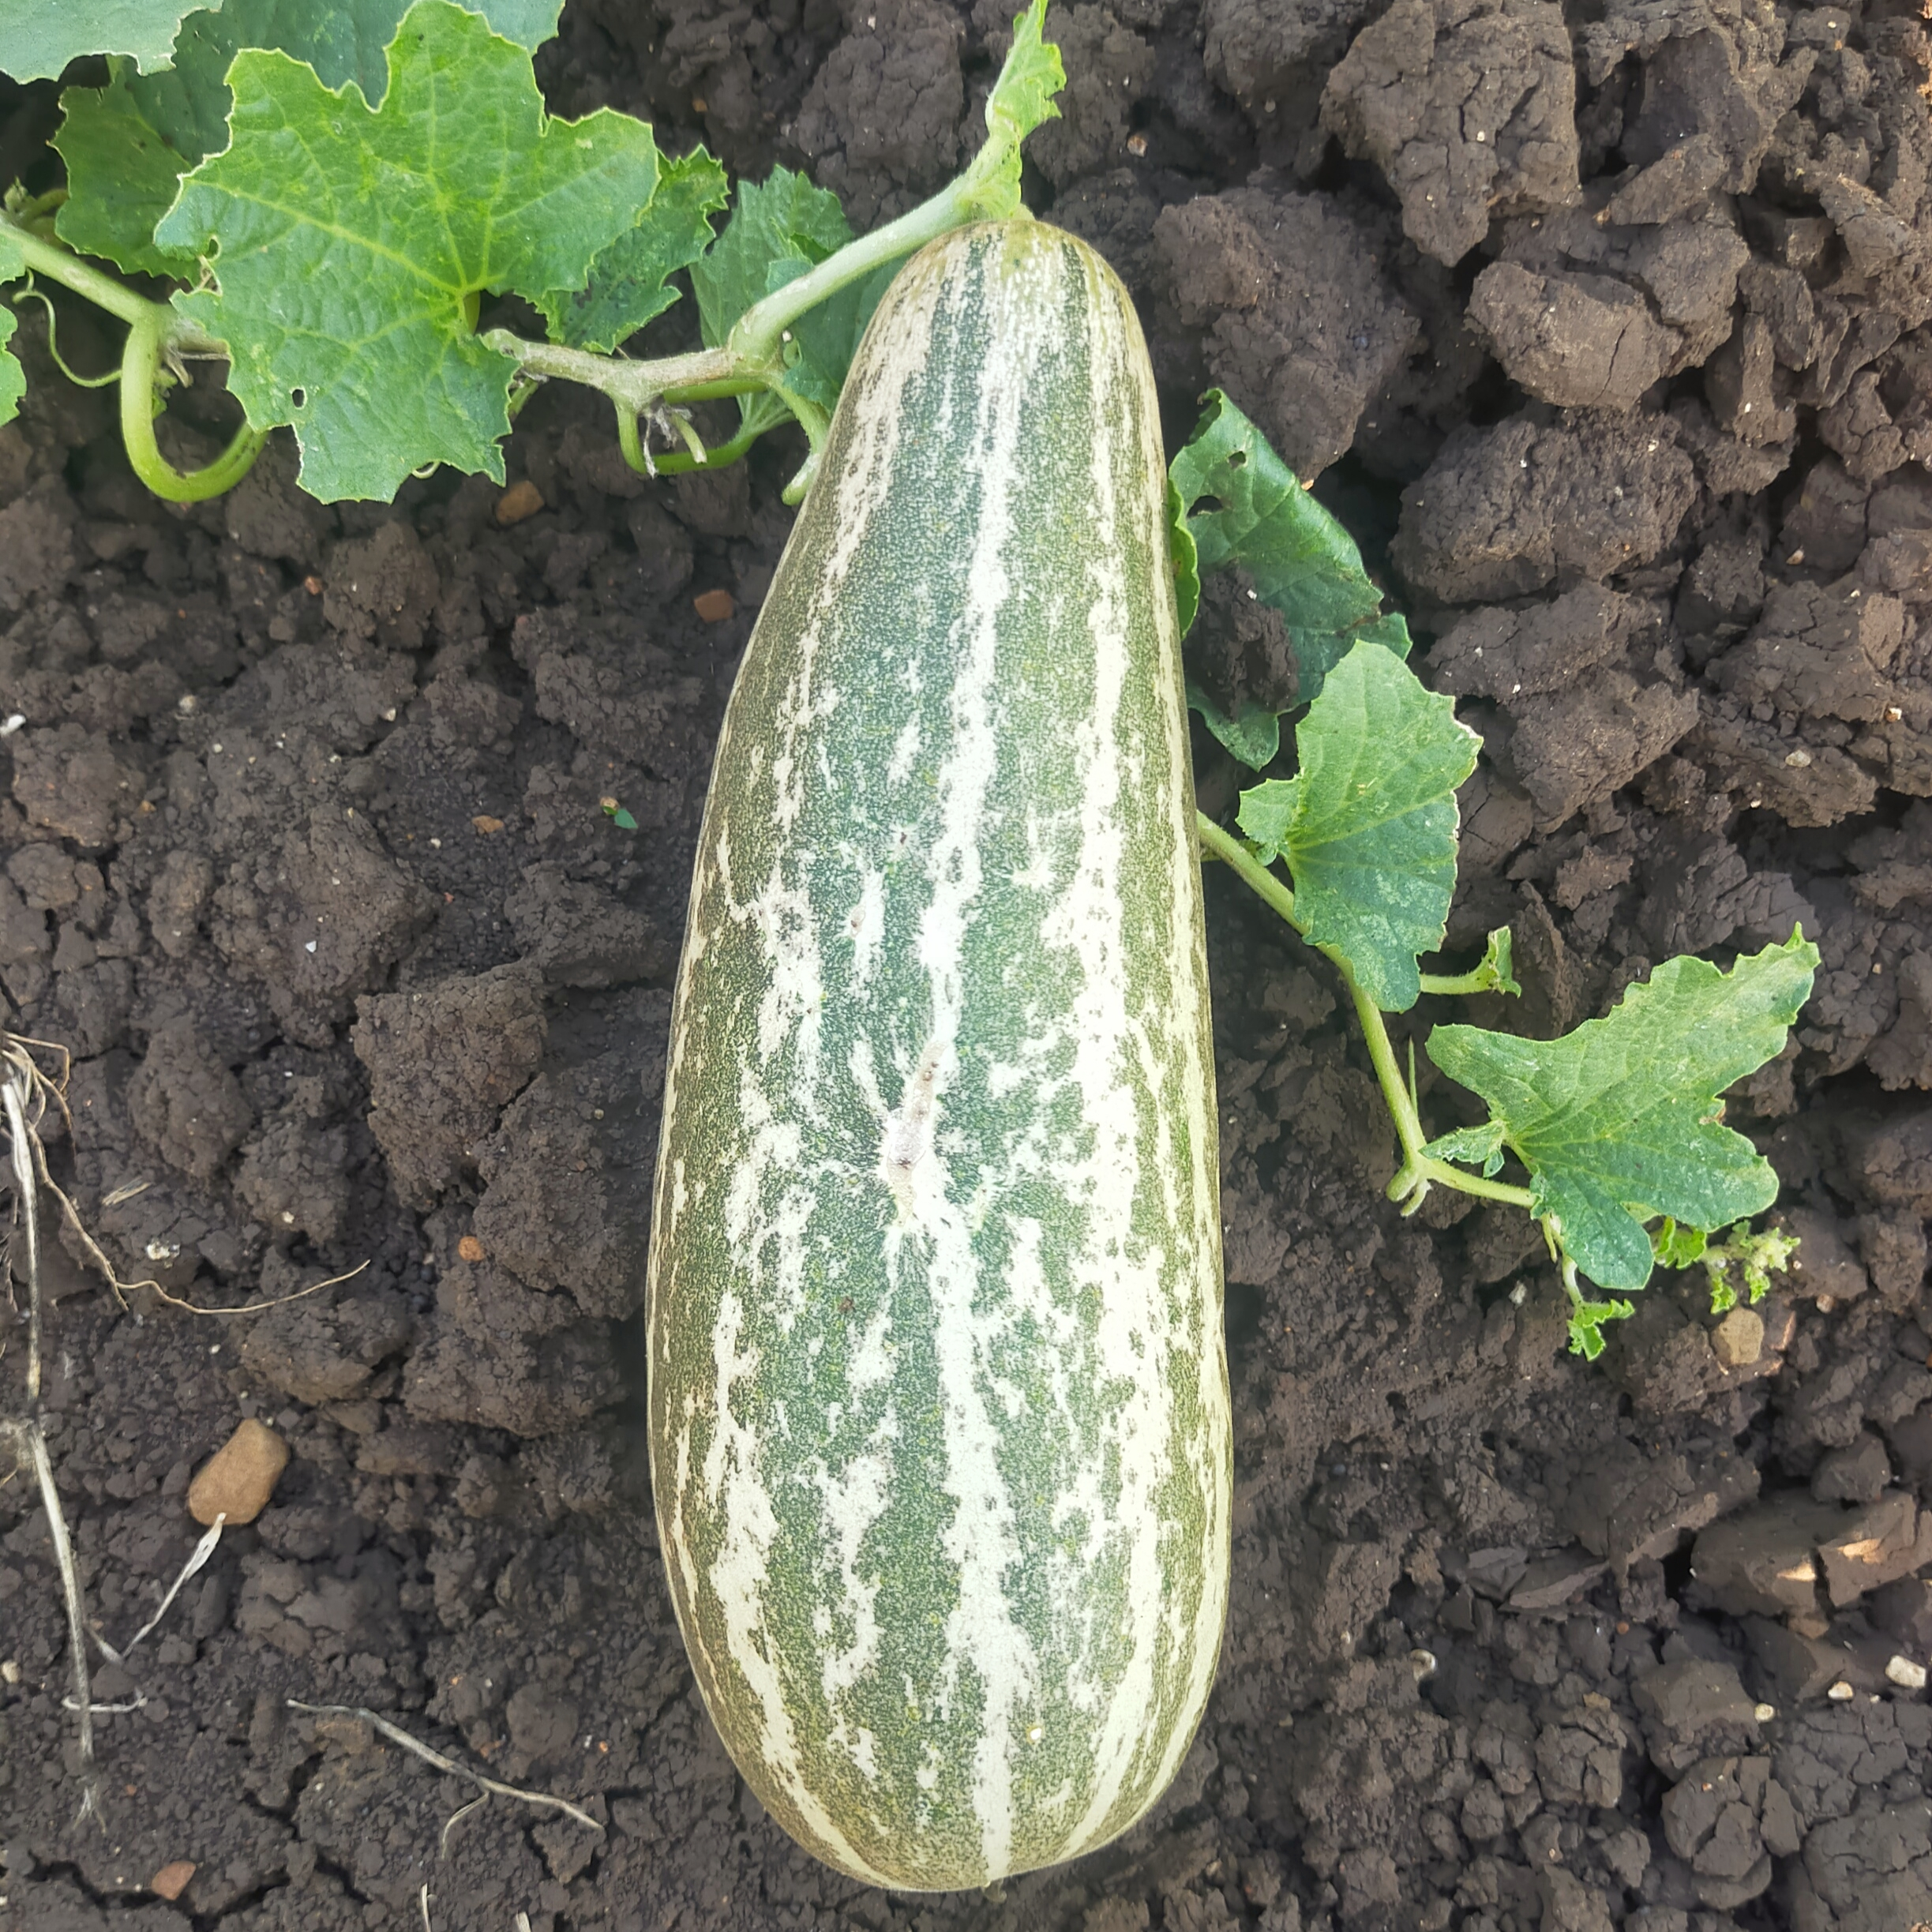 A cucumber with plant